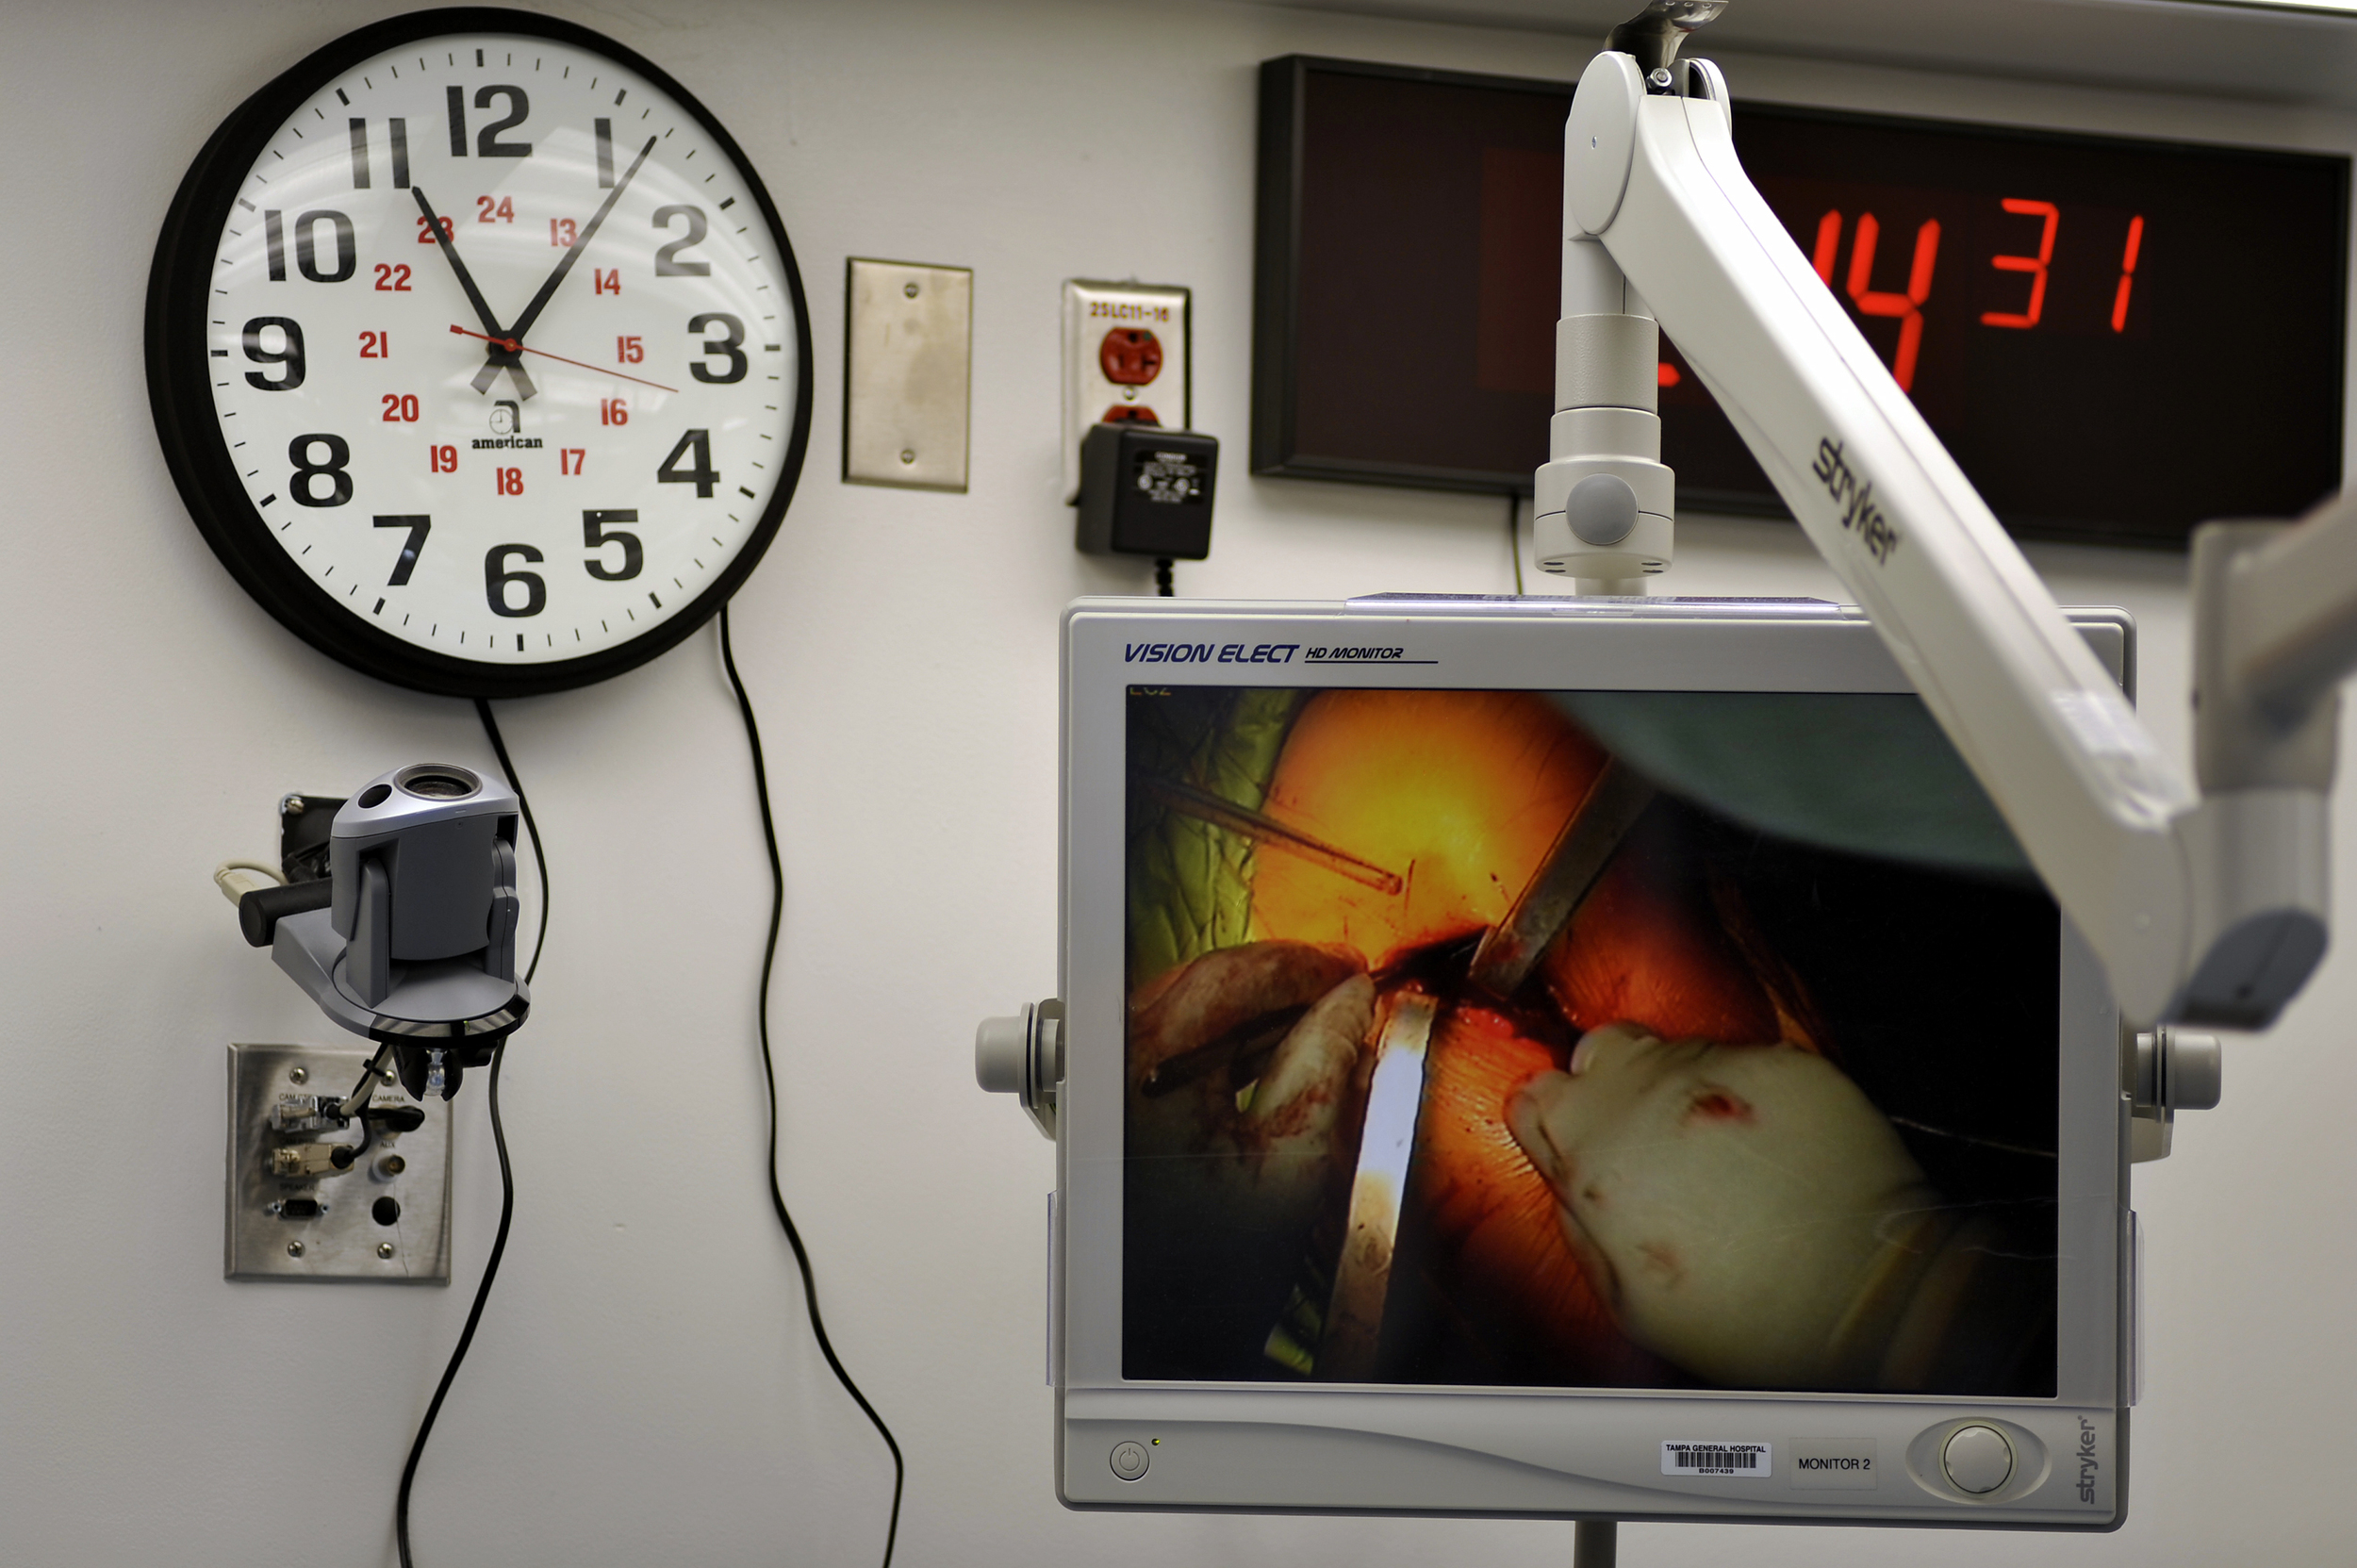 Progress of the surgery can be seen on one of several monitors in the OR.